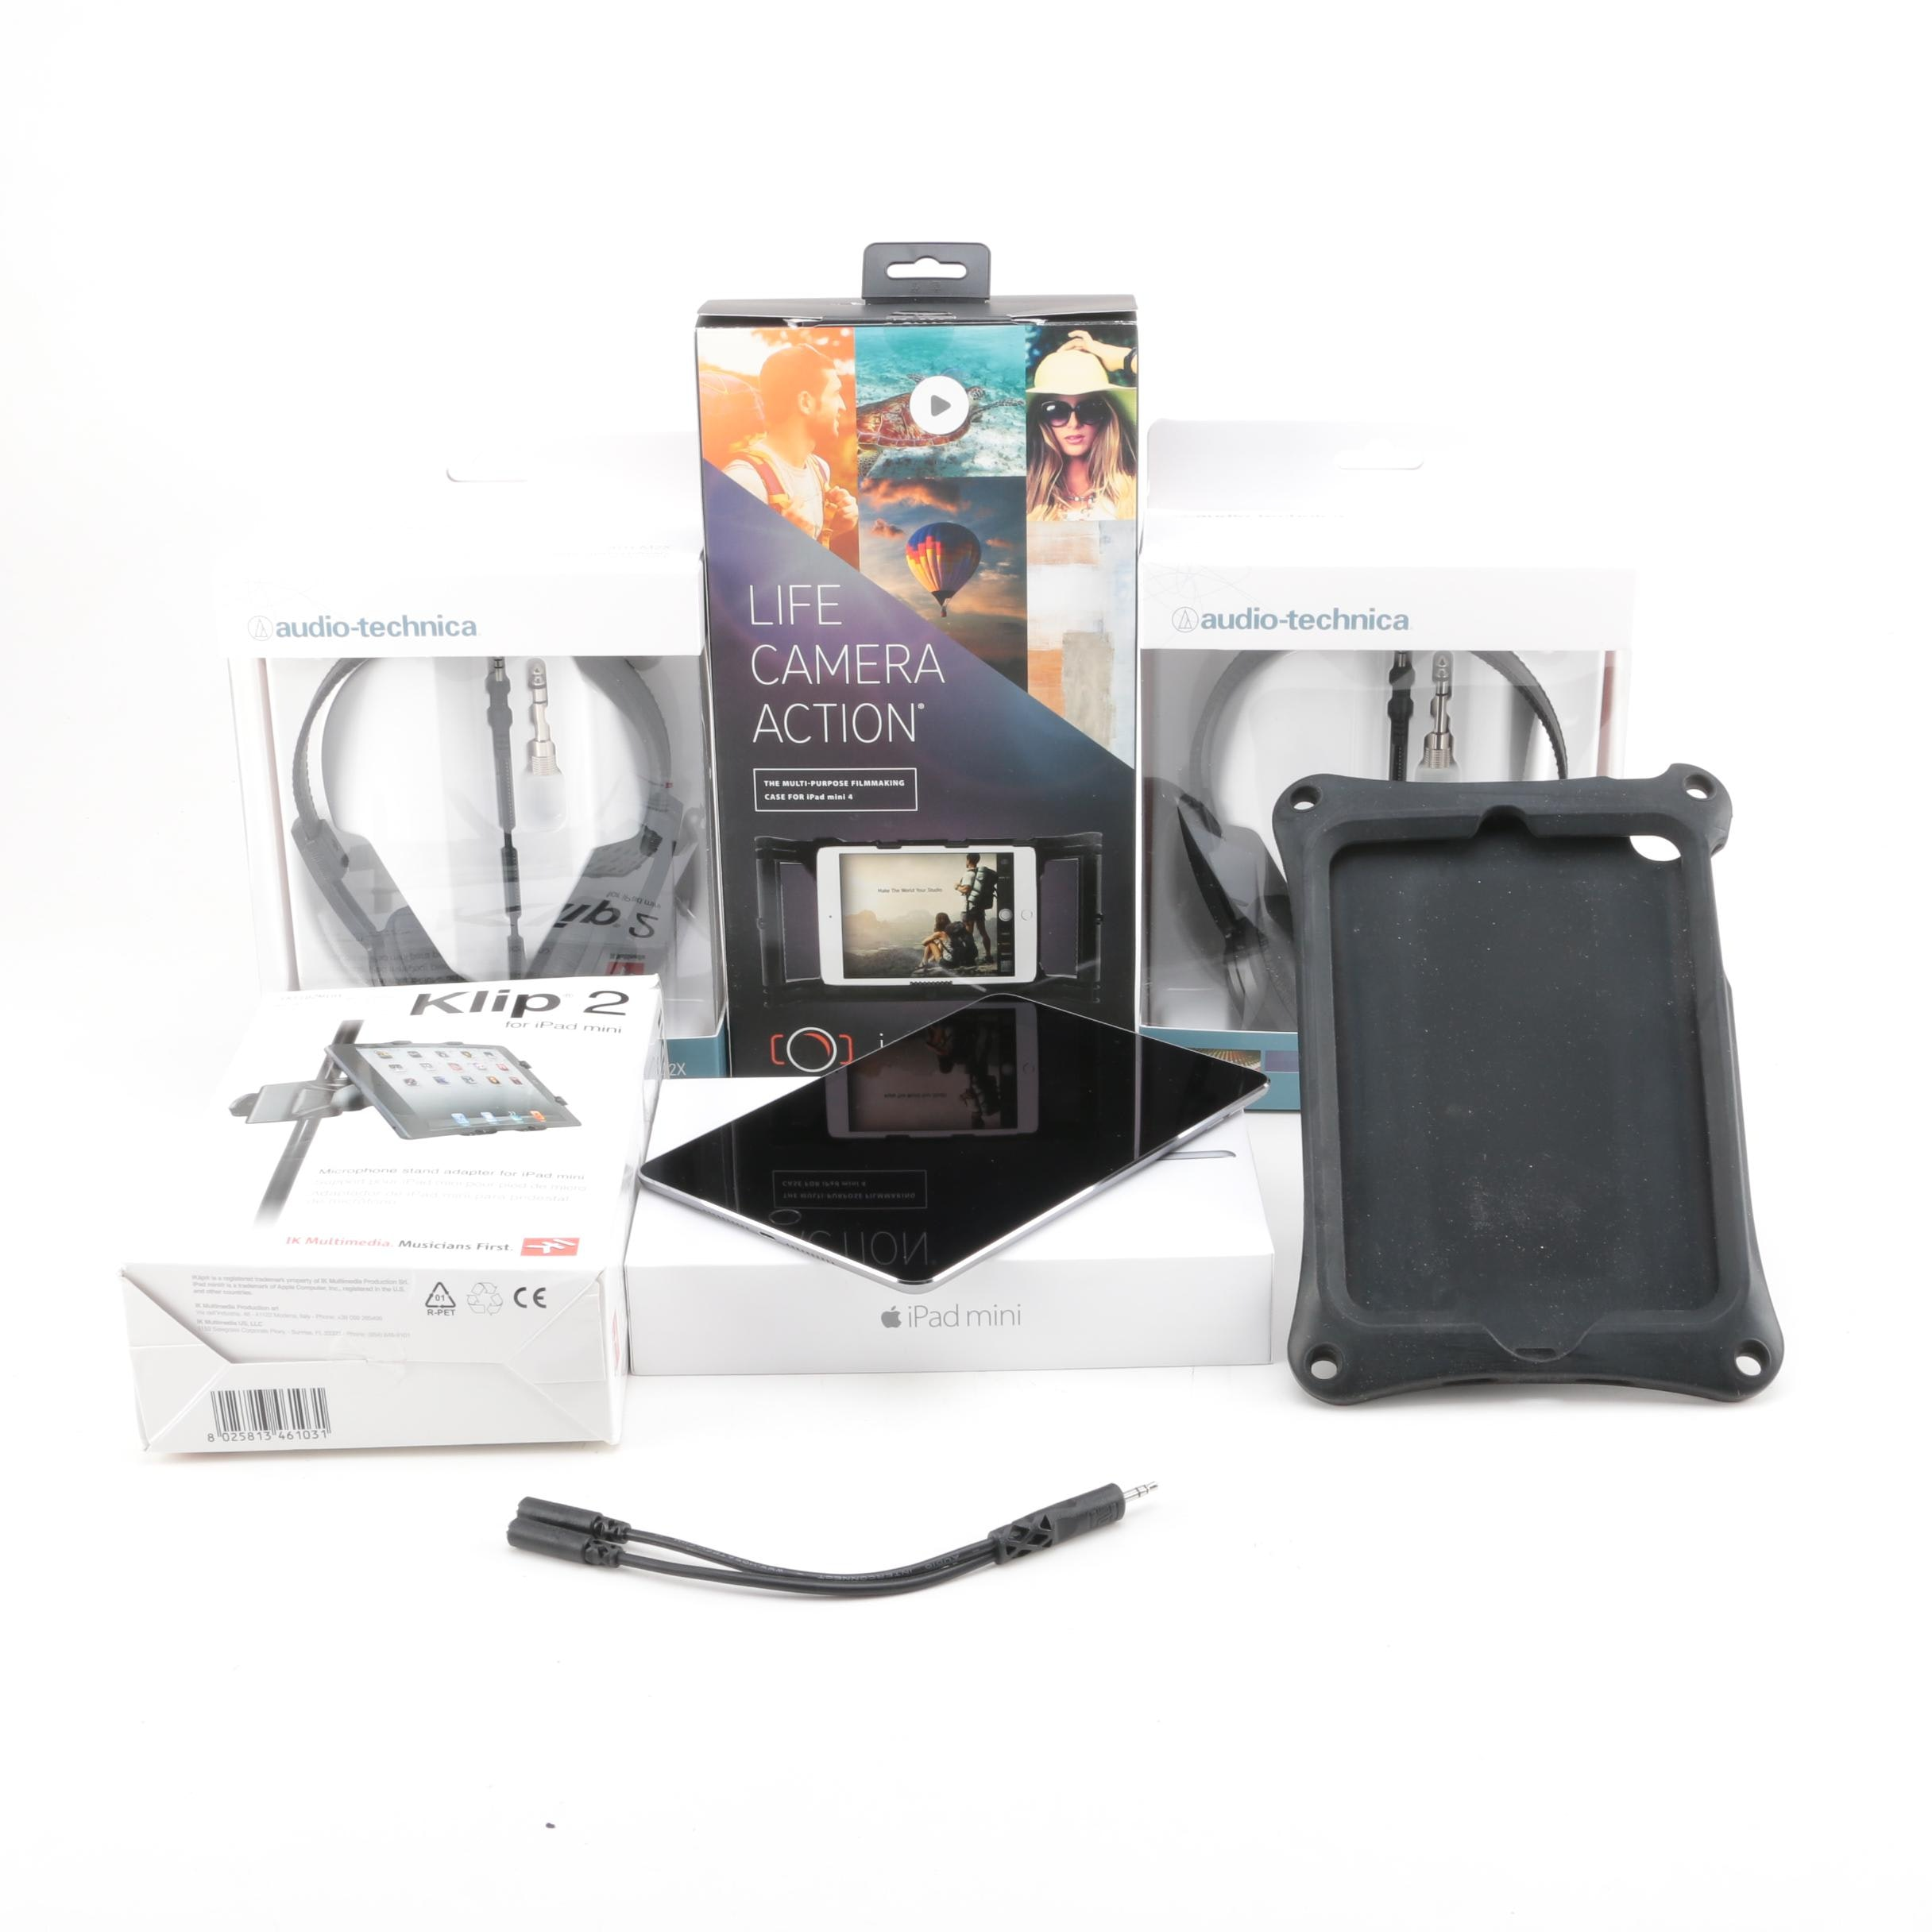 iPad Mini with iKlip 2 and Accessories